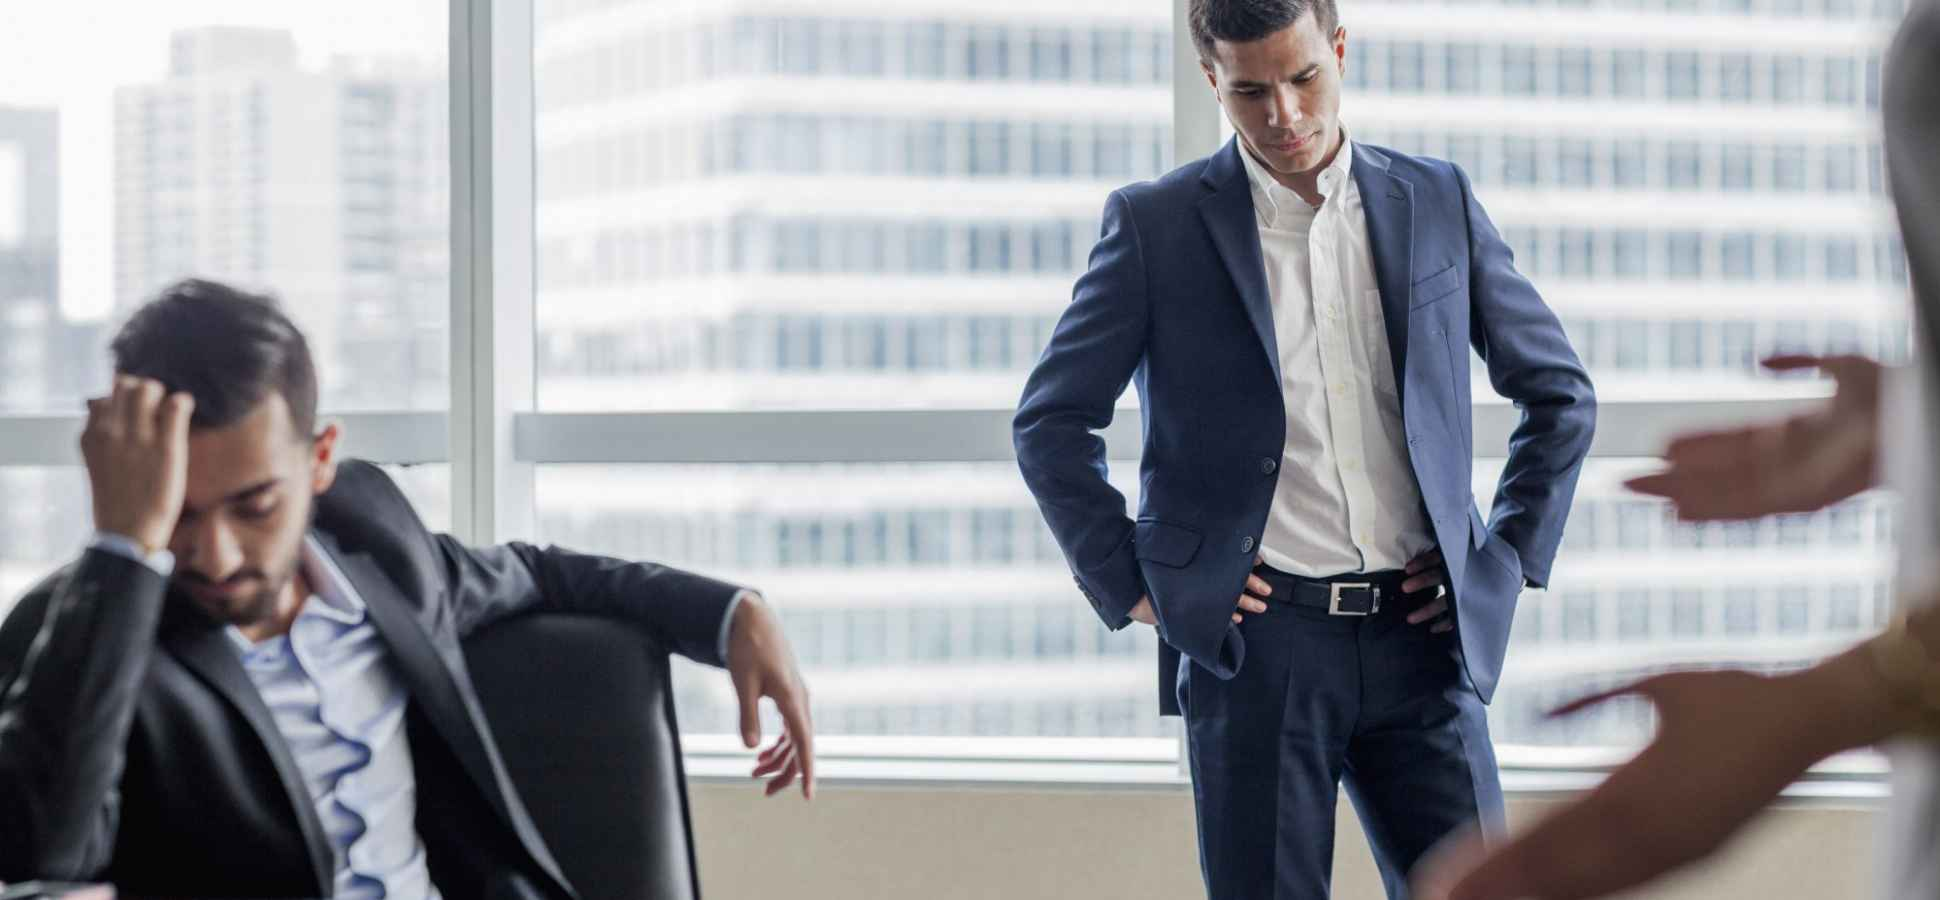 How You Can Fix These 4 Credibility Damaging Leadership Mistakes